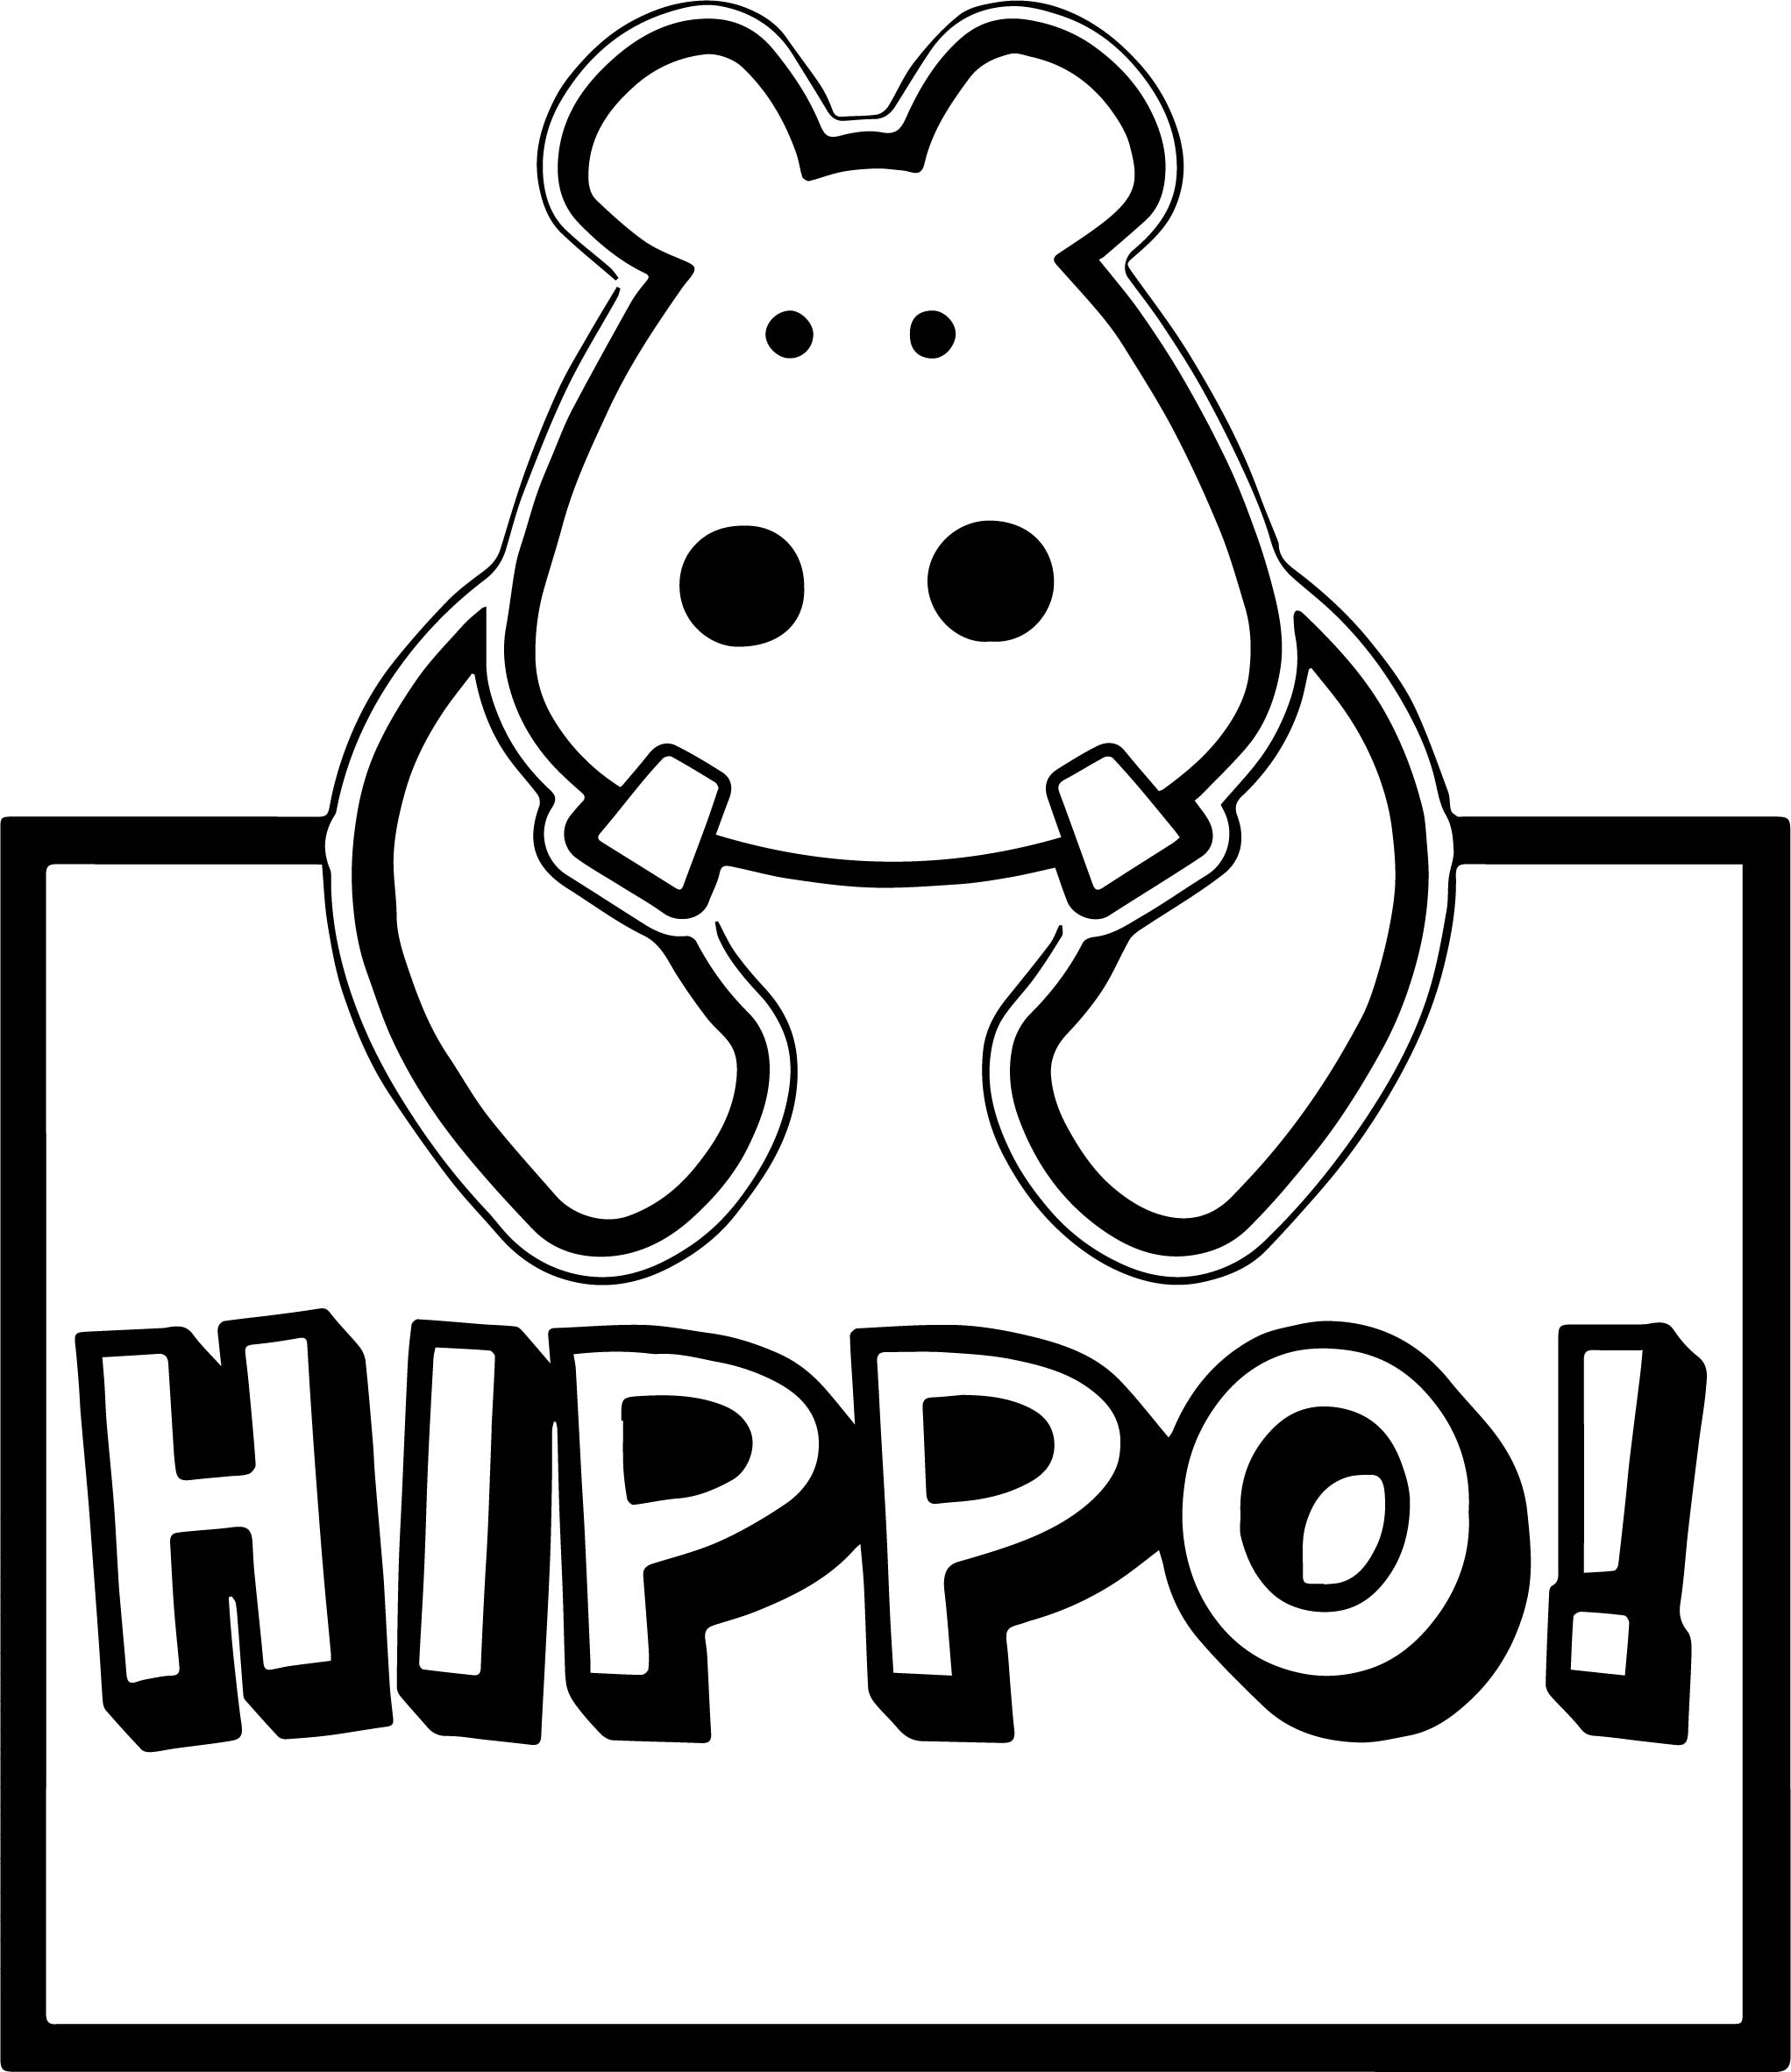 Hippo Animal Coloring Page